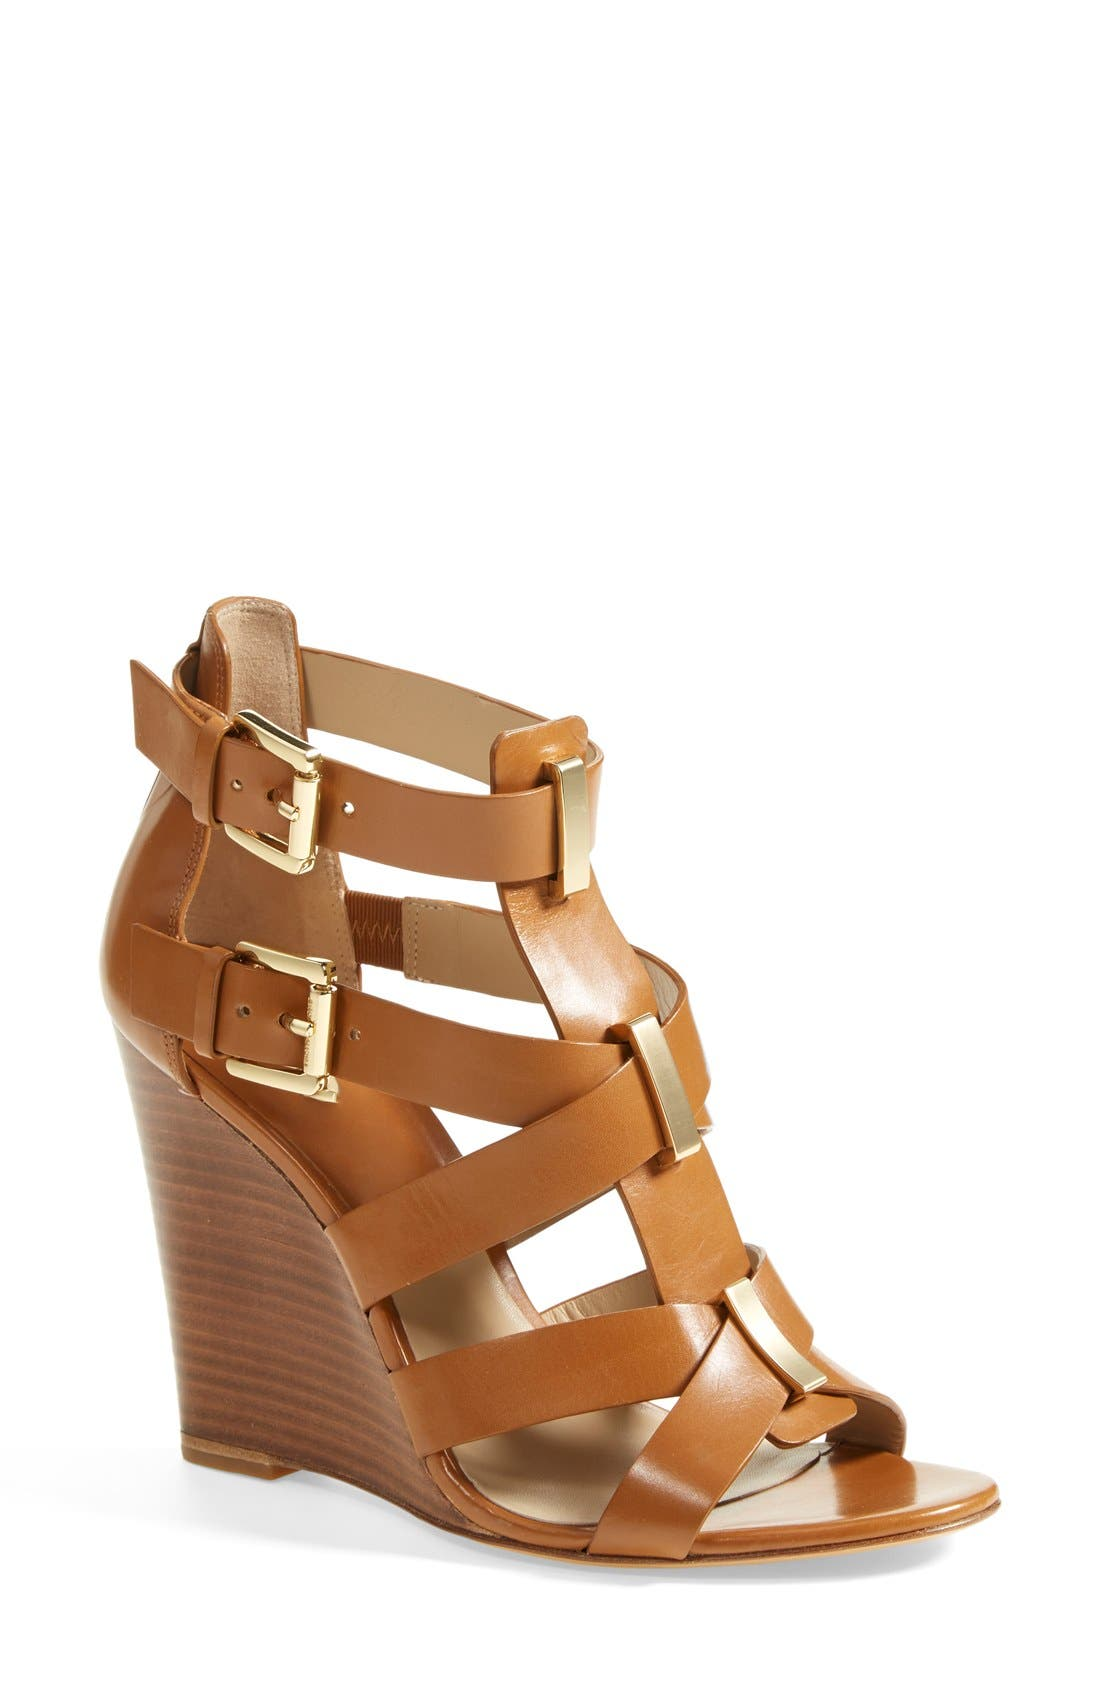 Alternate Image 1 Selected - Michael Kors 'Reagan' Wedge Sandal (Women)